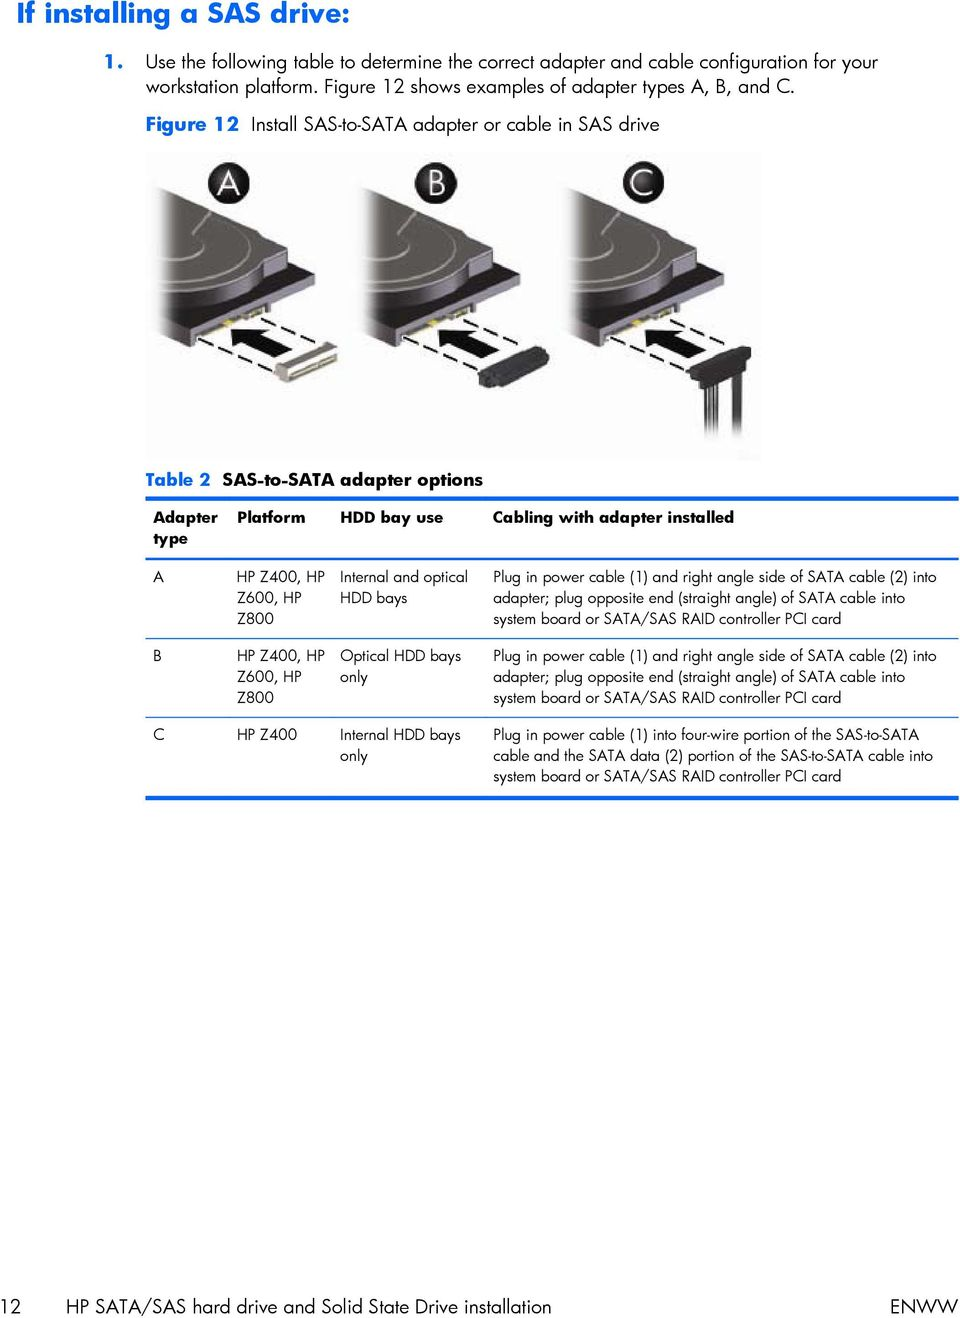 and optical HDD bays Plug in power cable (1) and right angle side of SATA cable (2) into adapter; plug opposite end (straight angle) of SATA cable into system board or SATA/SAS RAID controller PCI